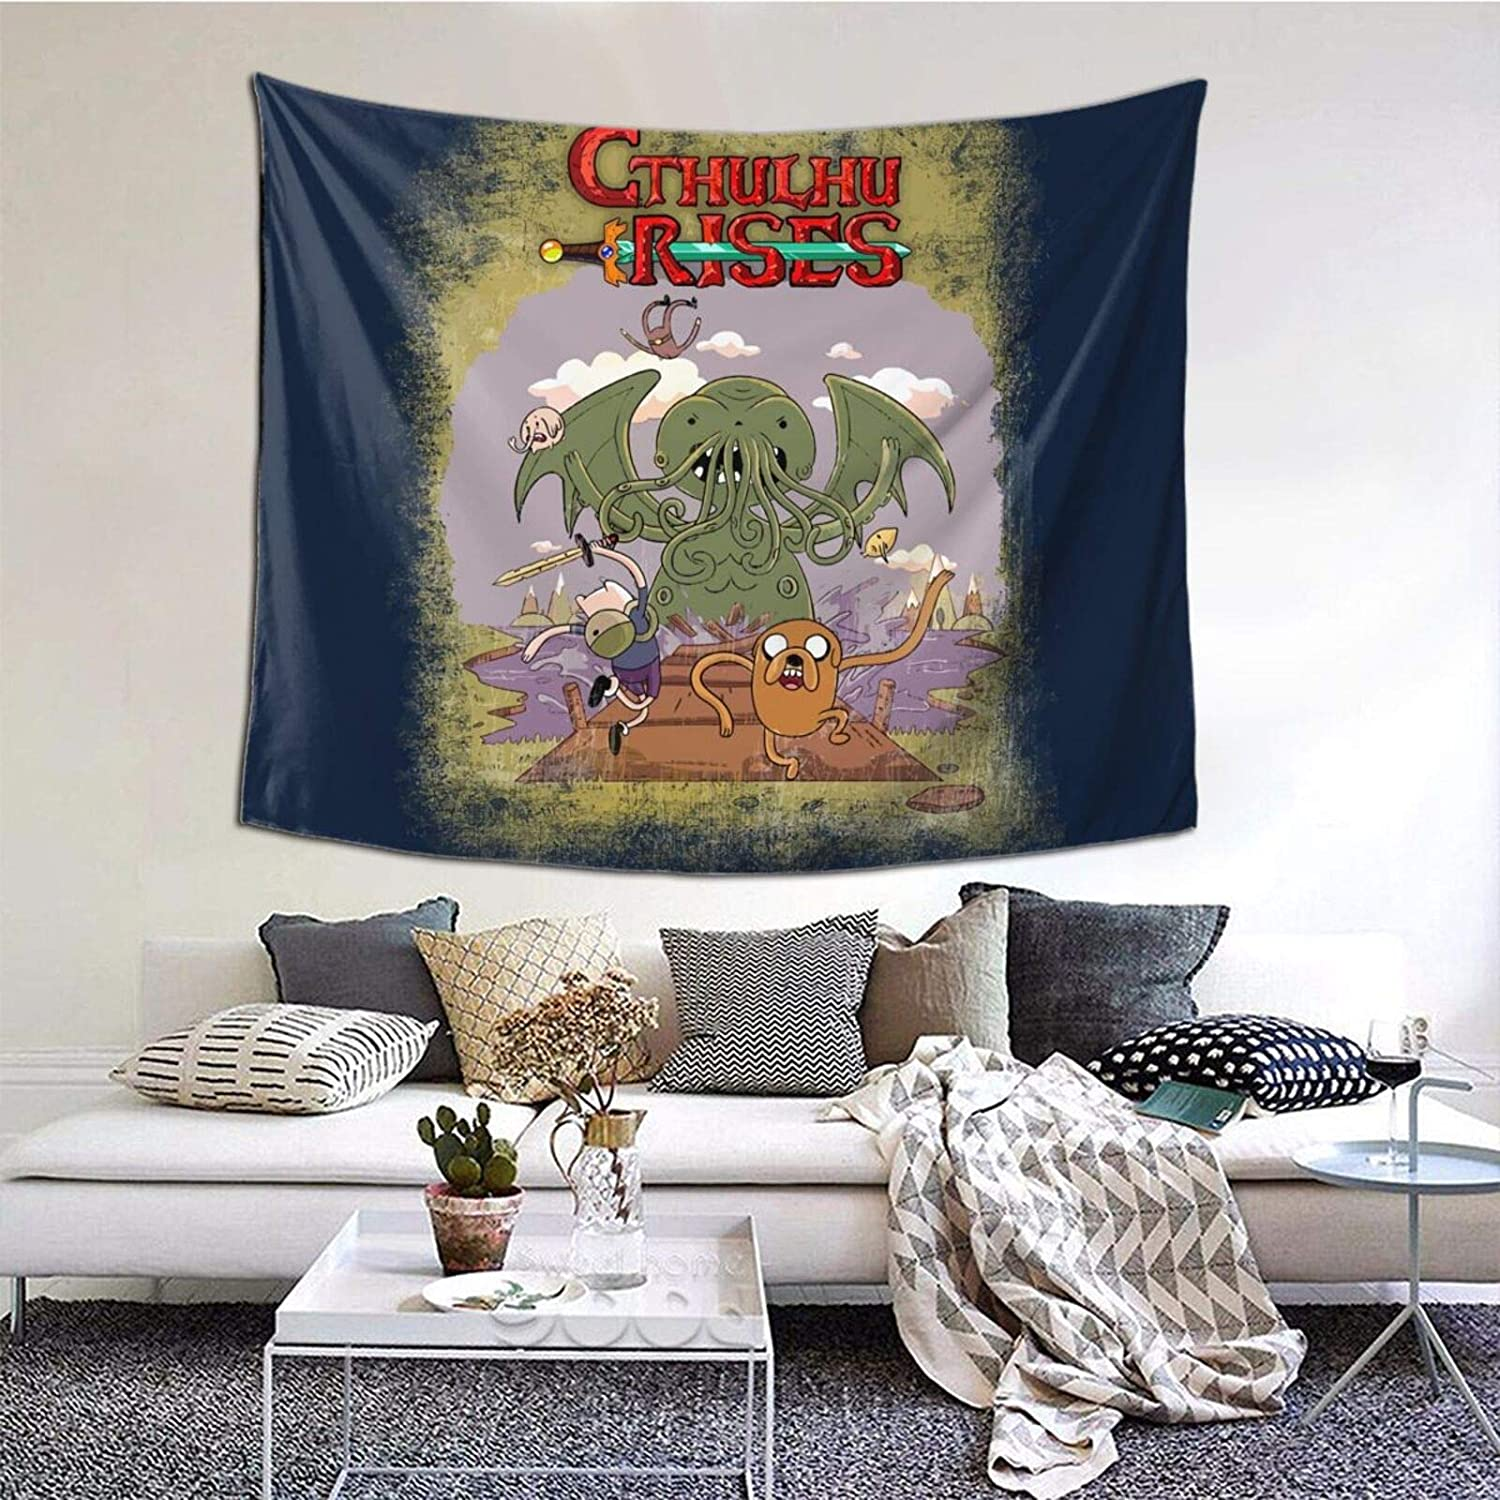 Tapestry Adventure Time H P Lovecraft Cthulhu Rises Wall Tapestry Anime Fans Home Dorm Wall Decor 60x50 Inches